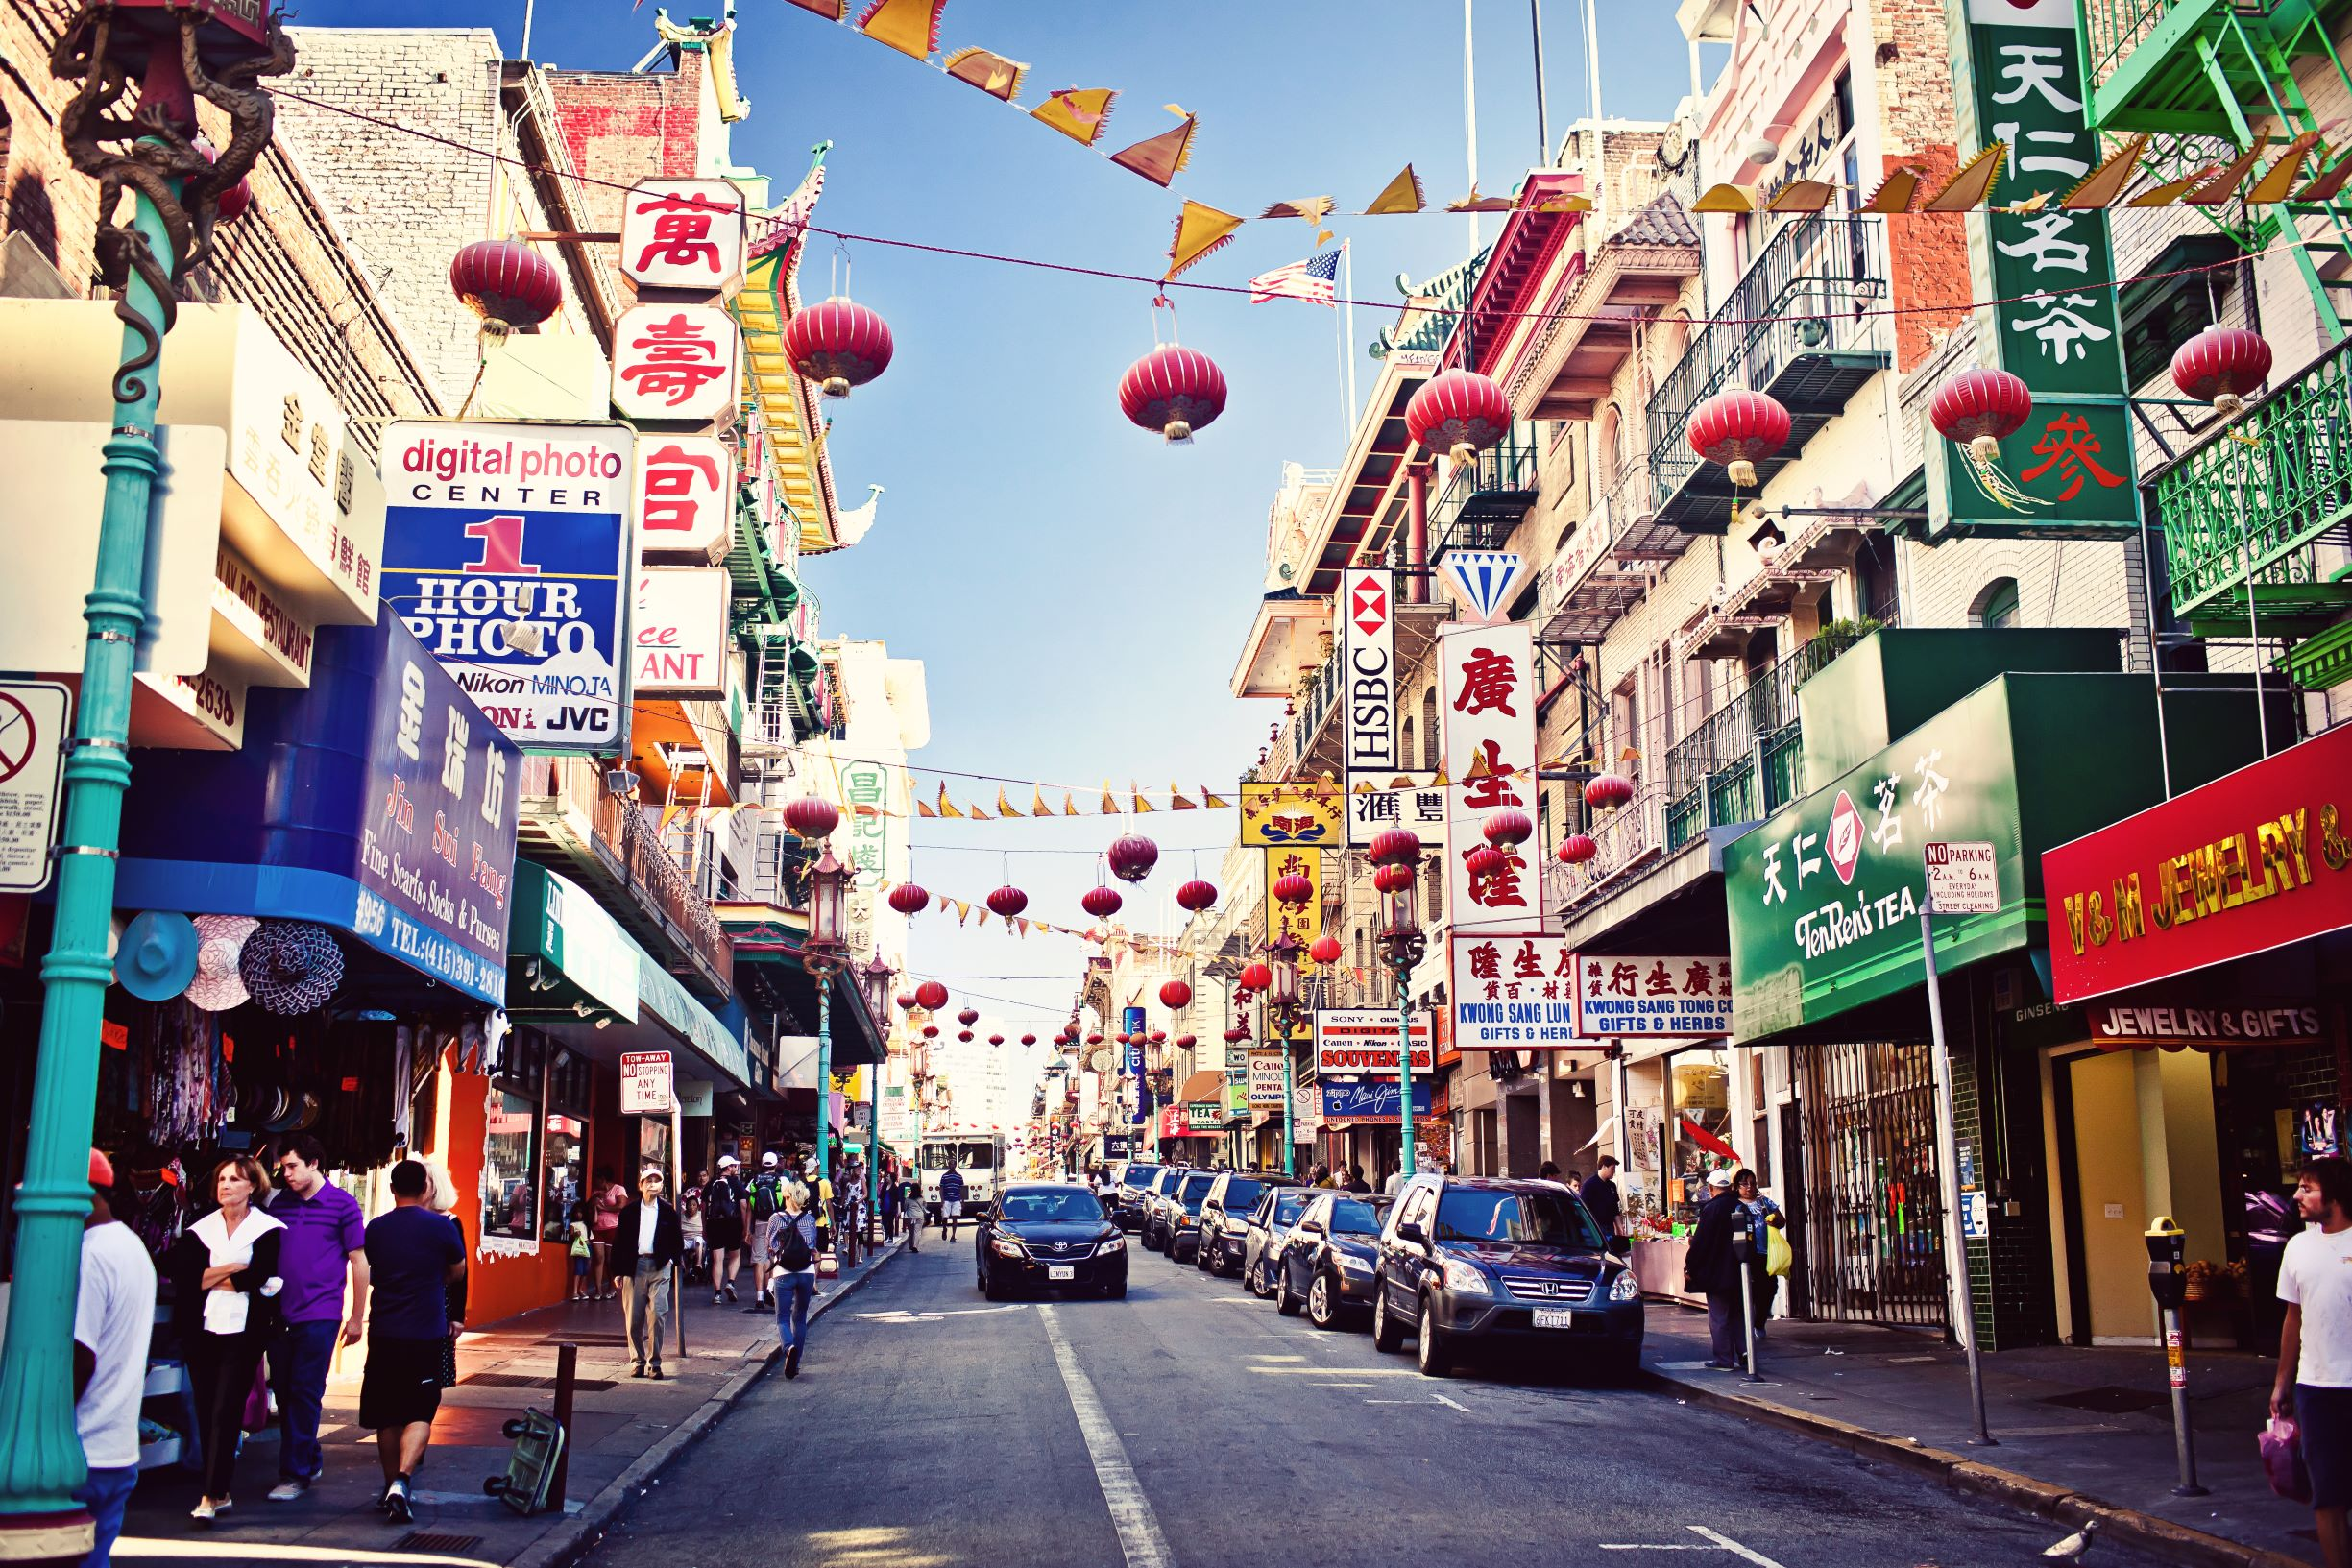 Photo of Chinatown, one of the best places to stay in San Francisco. Photo features a street view of different shops and restaurants with a road in the middle. Lanterns are strung above the street.